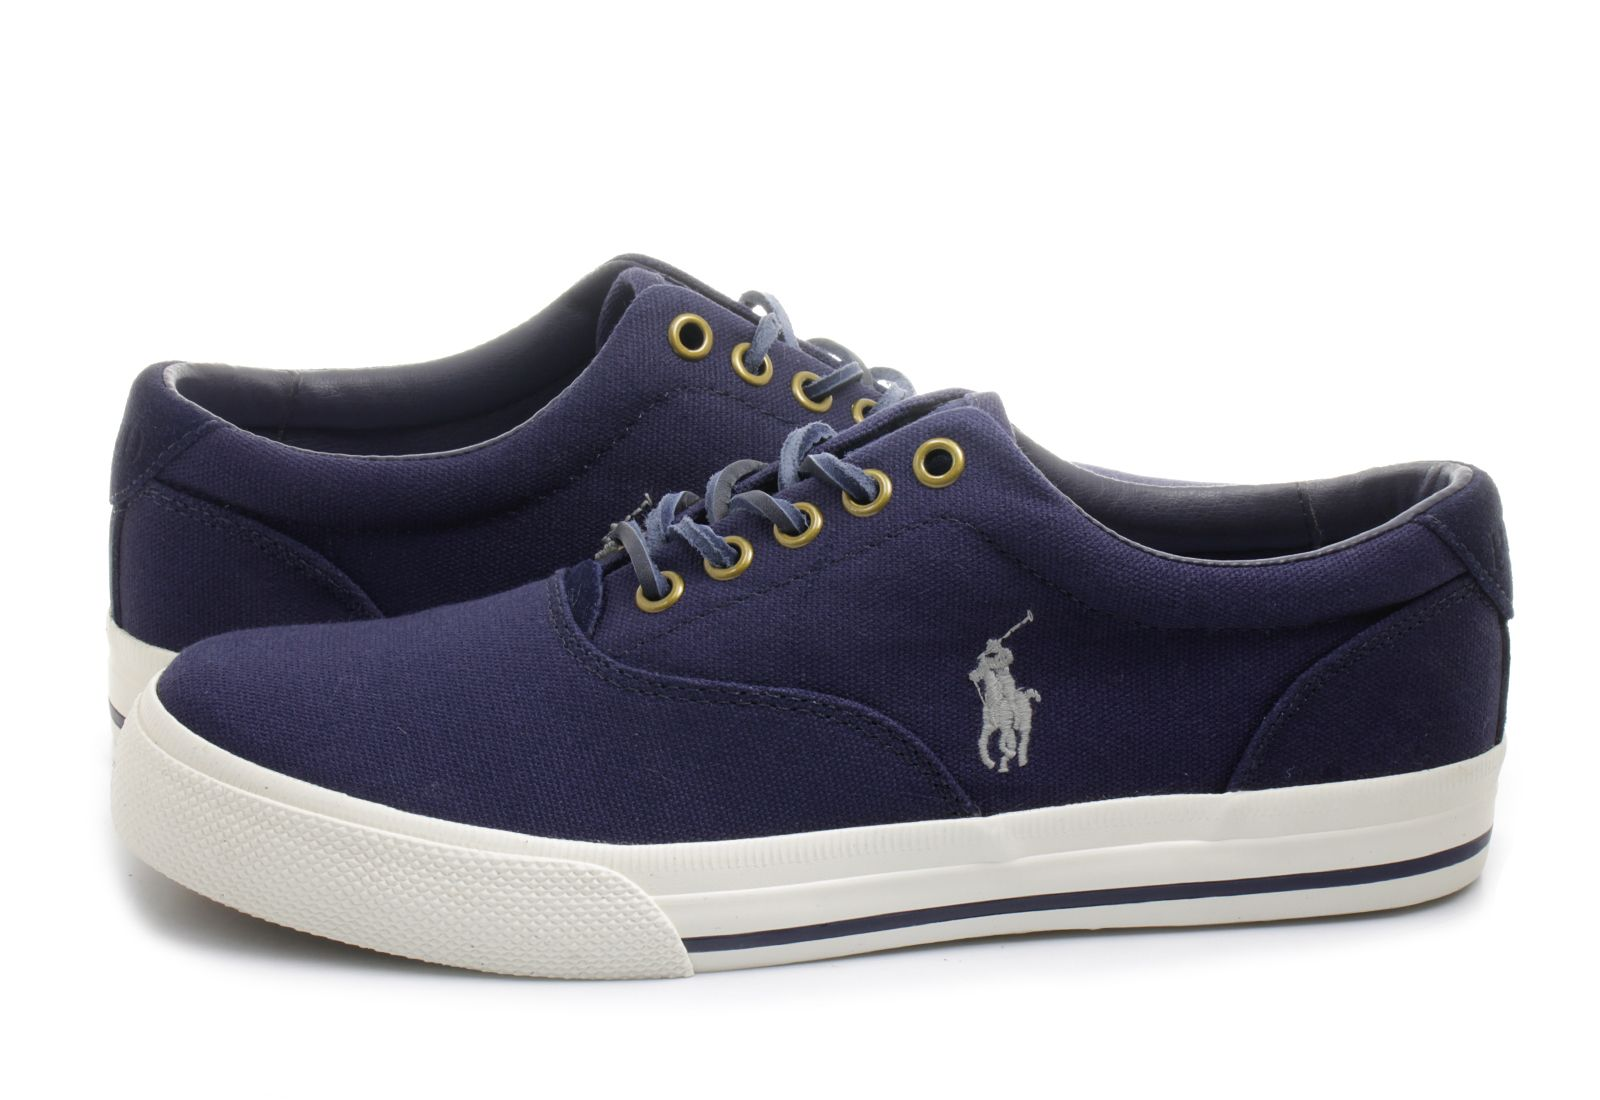 Polo Ralph Lauren Cipő - Vaughn-ne - 816641828002 - Office Shoes ... 43bf309d57